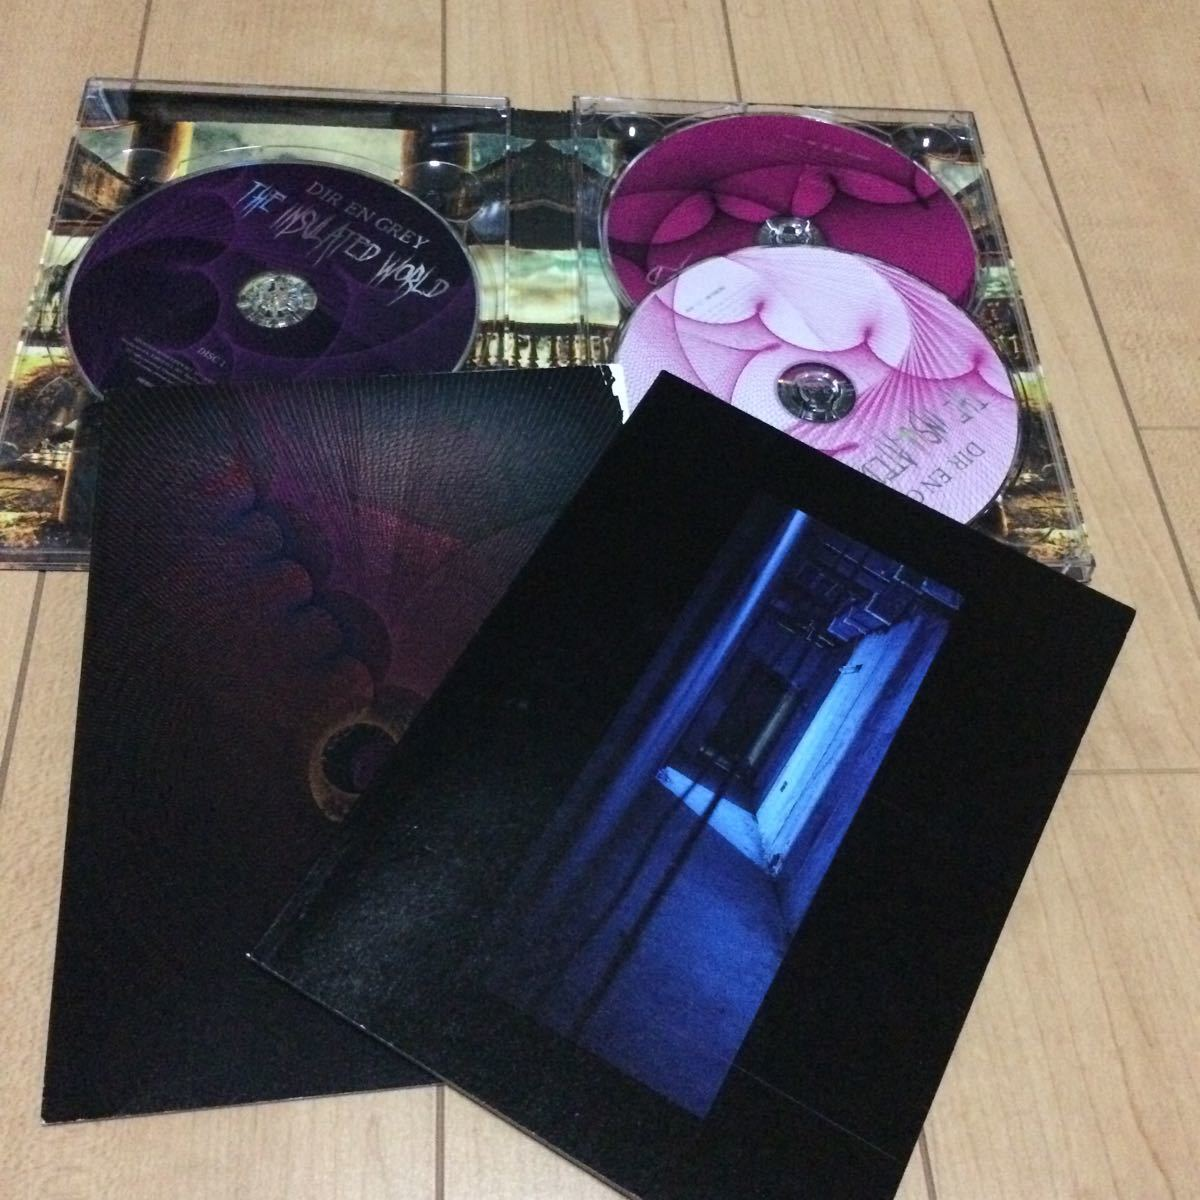 DIR EN GREY CD The Insulated World(完全生産限定盤)(Blu-spec CD2+CD+DVD) アルバム_画像3